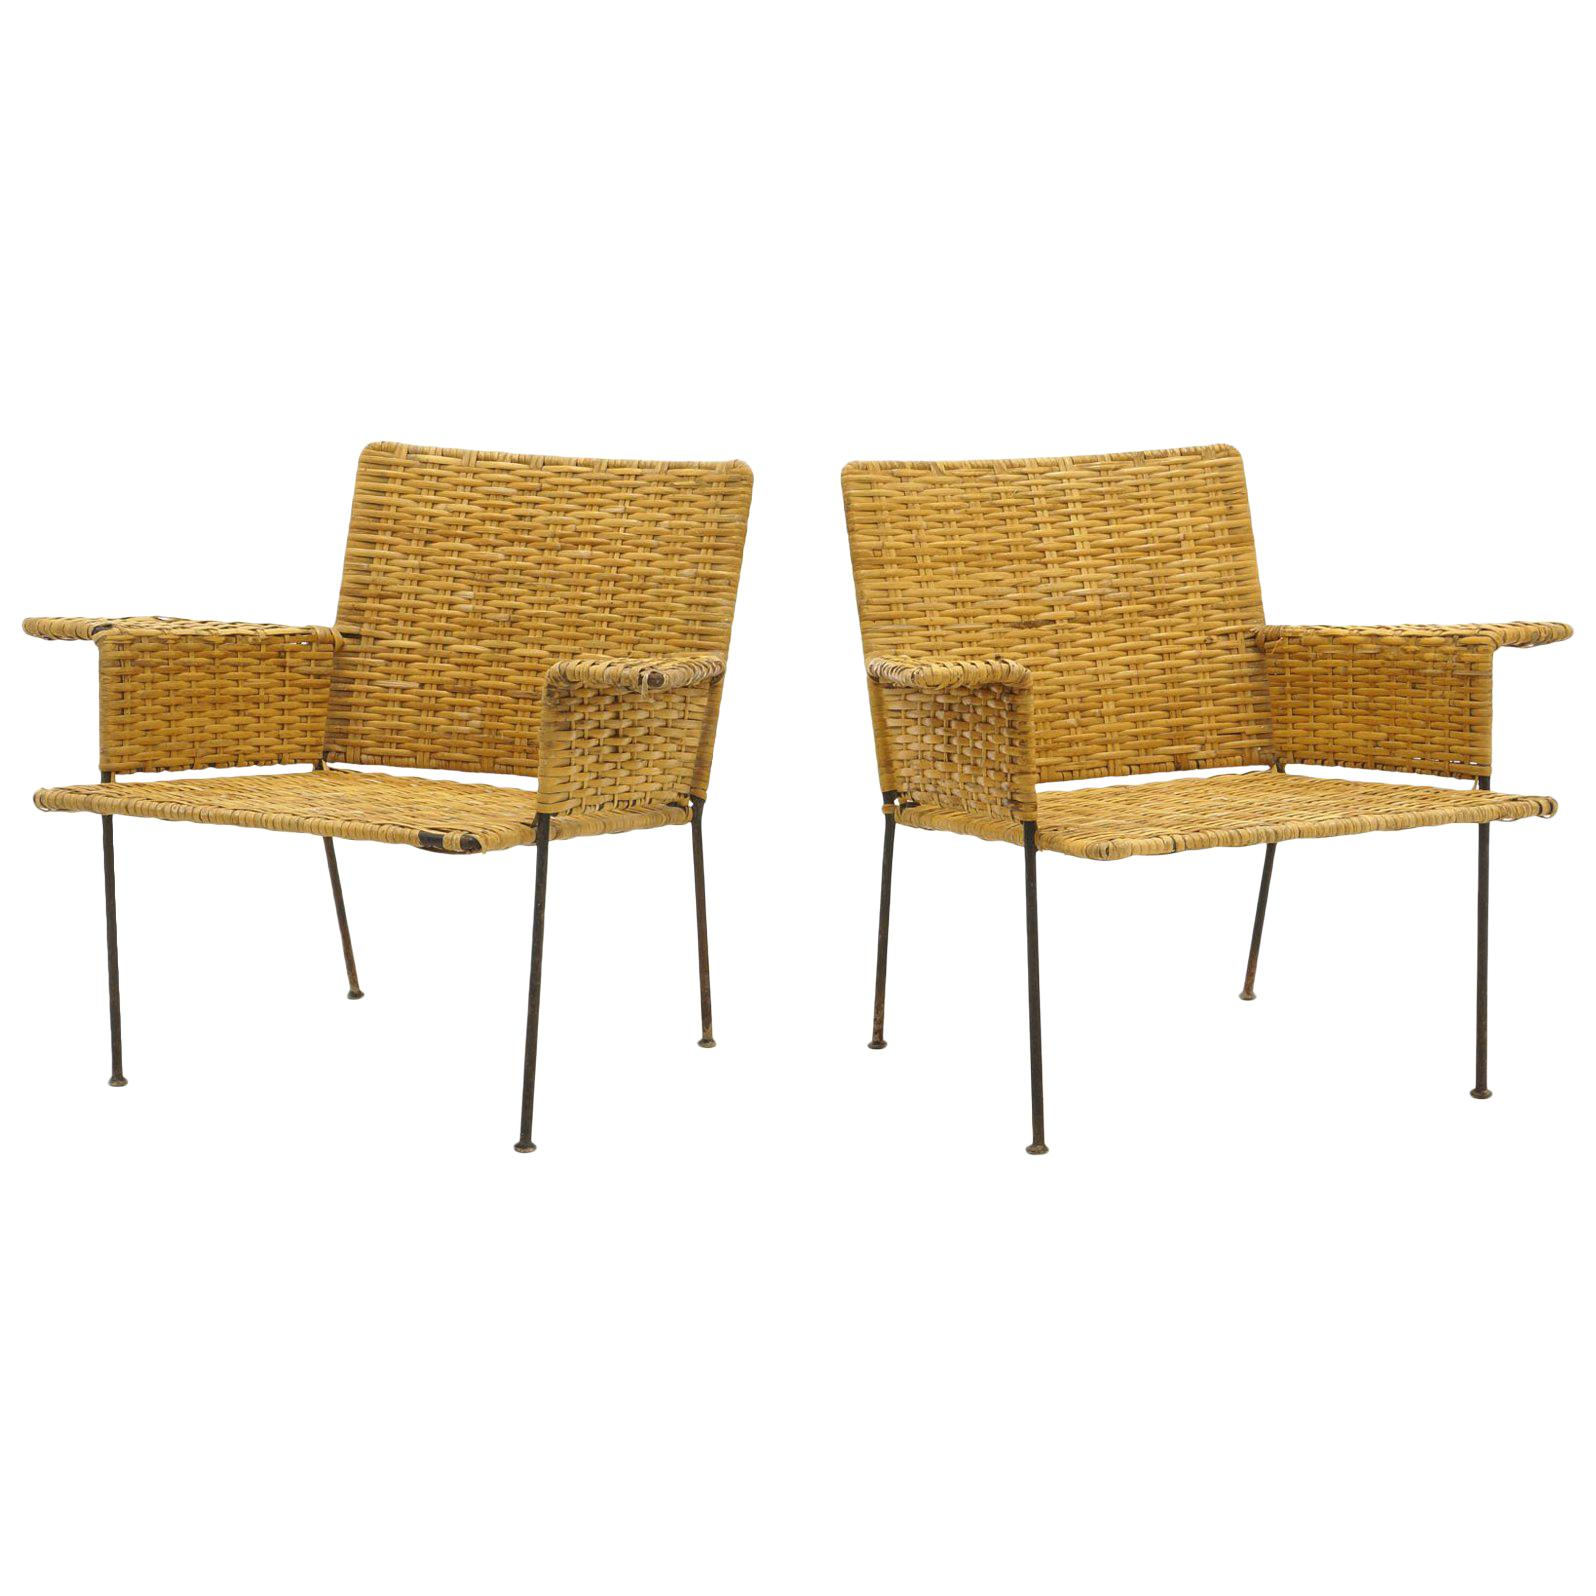 Antique and vintage patio and garden furniture 3026 for sale at 1stdibs